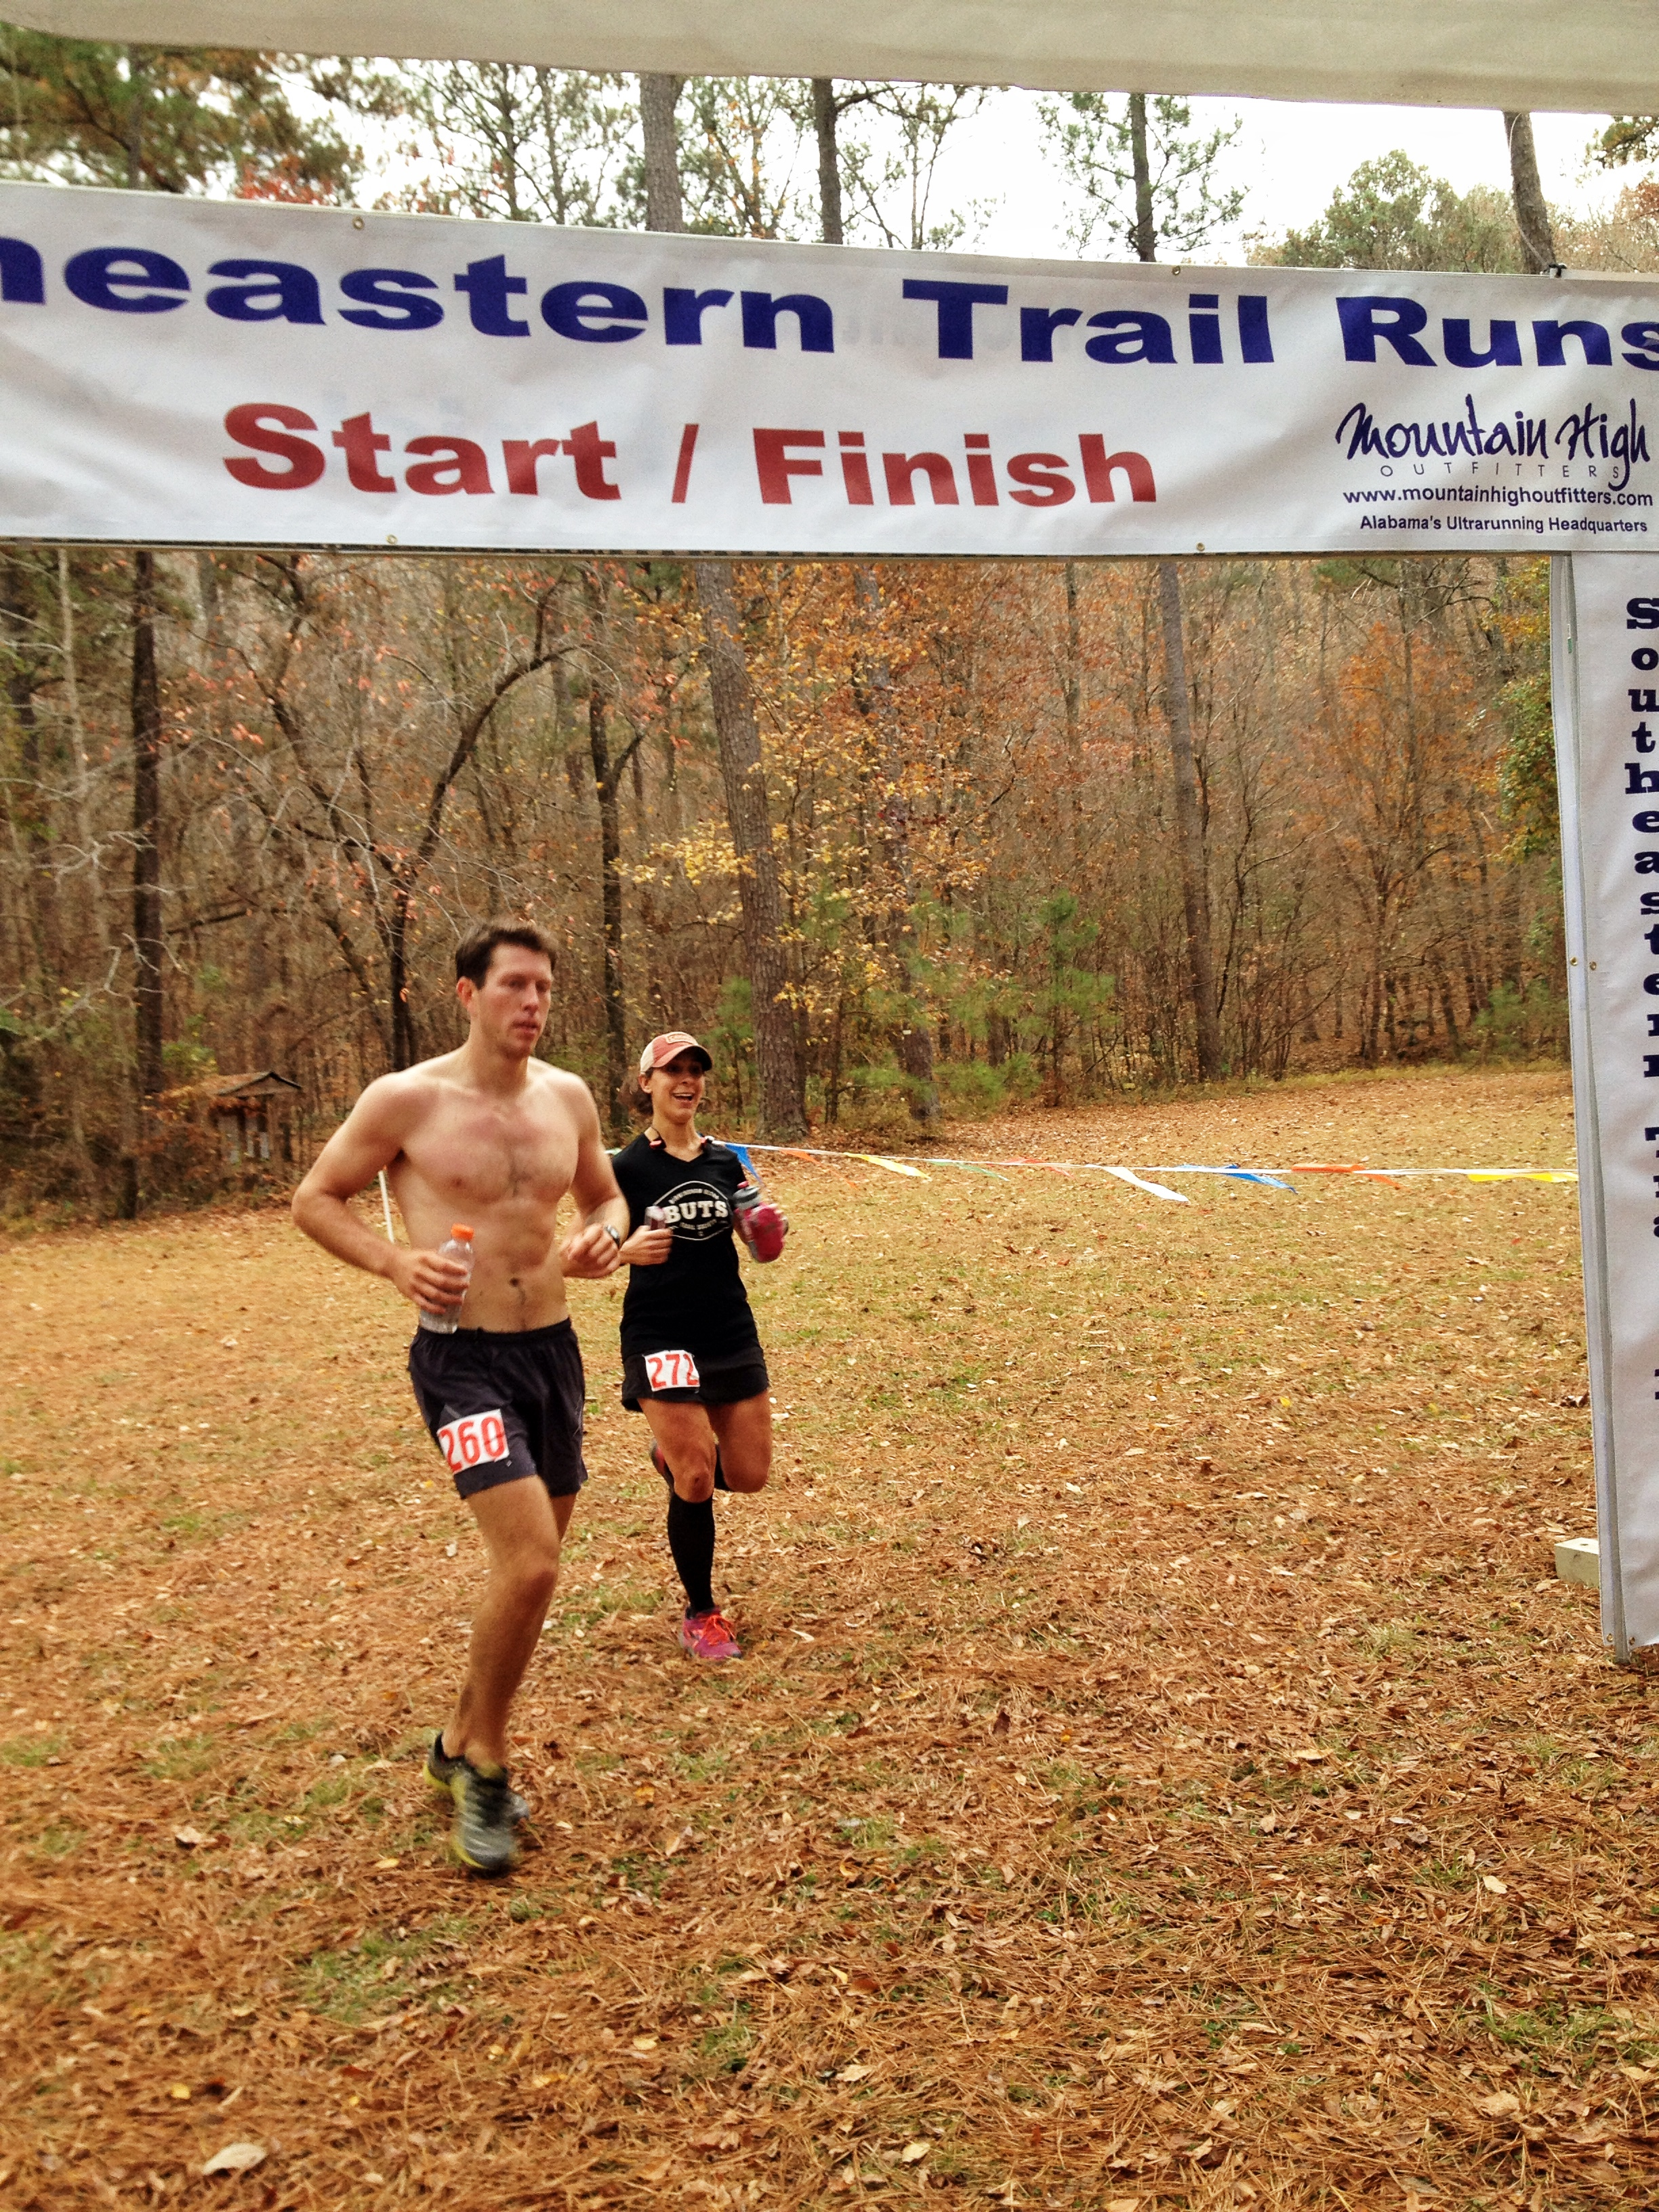 Tranquility Lake 50K, Southeastern Trail Series, Southeast Trail Runs, David Tosch, ultra running, trail running, Oak Mountain State Park, 50K training, Birmingham Ultra Trail Society